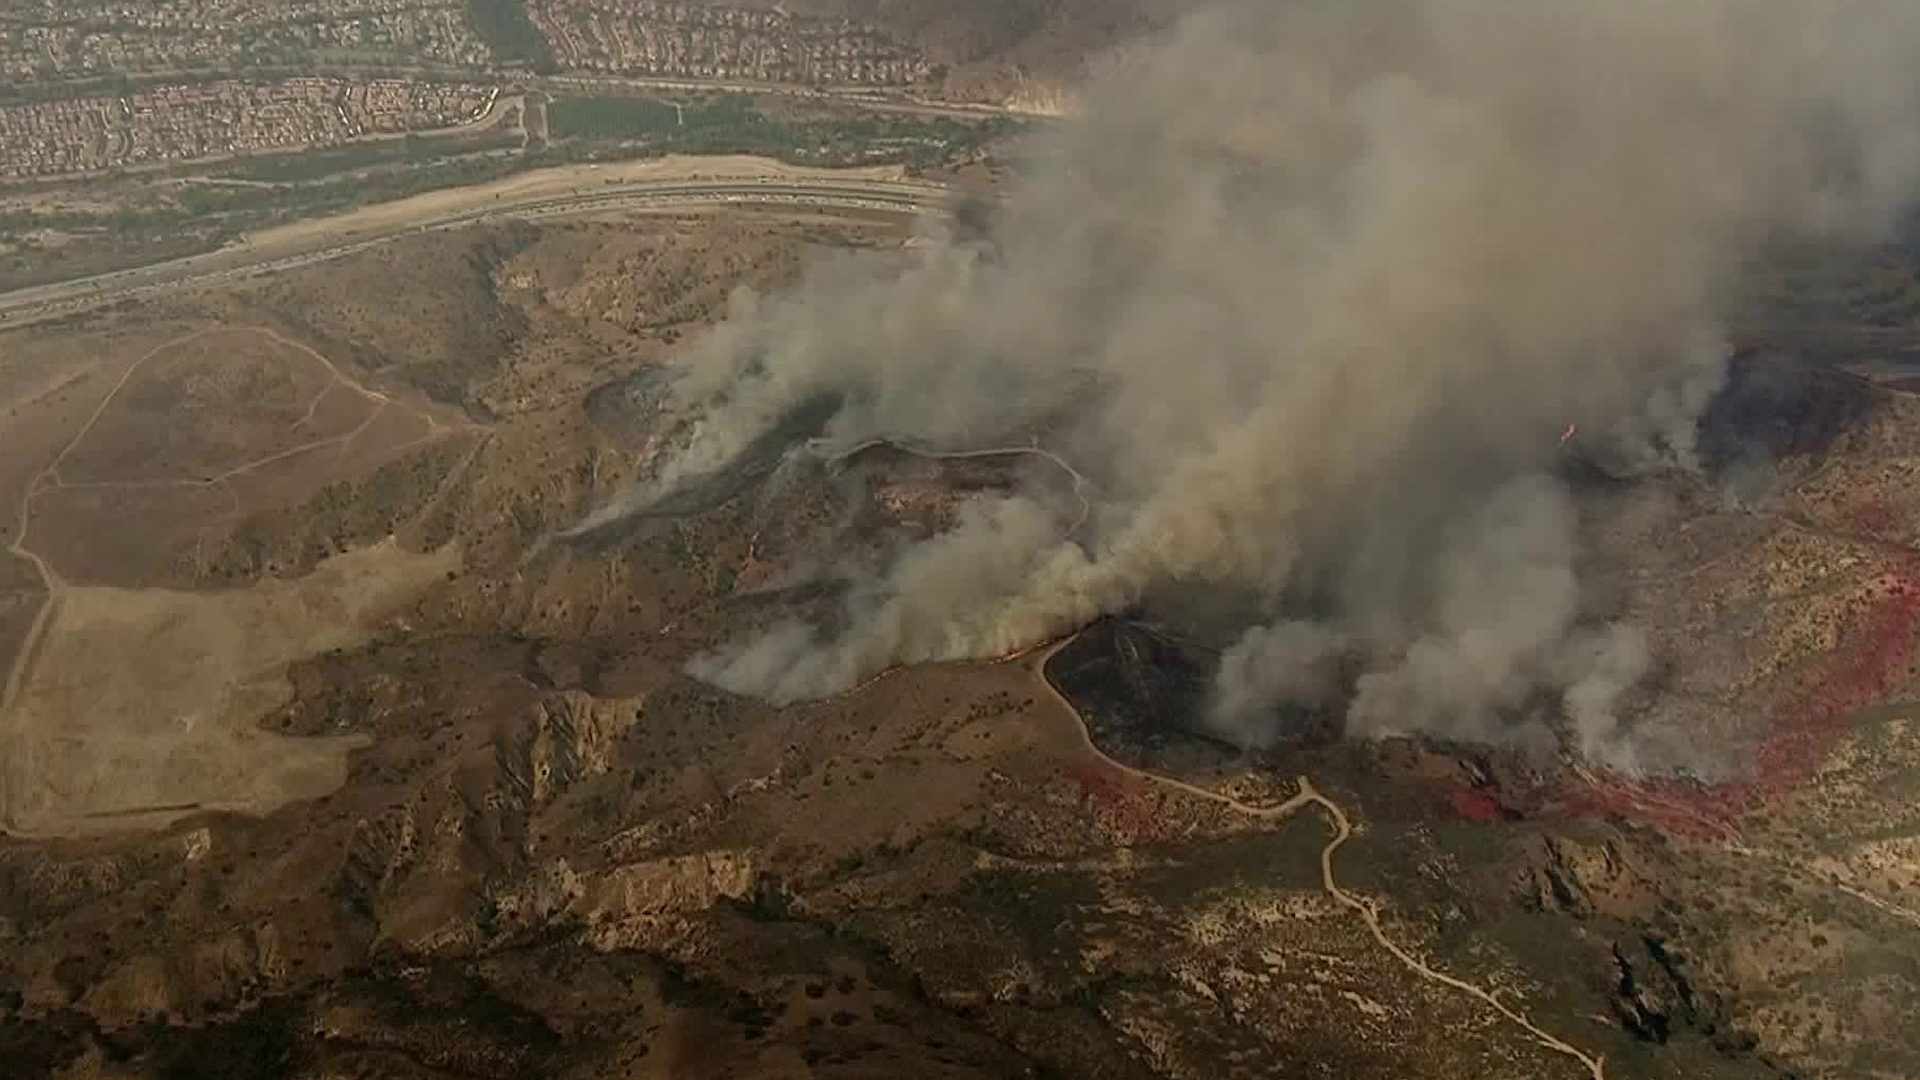 The Canyon Fire burns near the 91 Freeway near the border of Anaheim and Corona on Sept. 25, 2017. (Credit: KTLA)